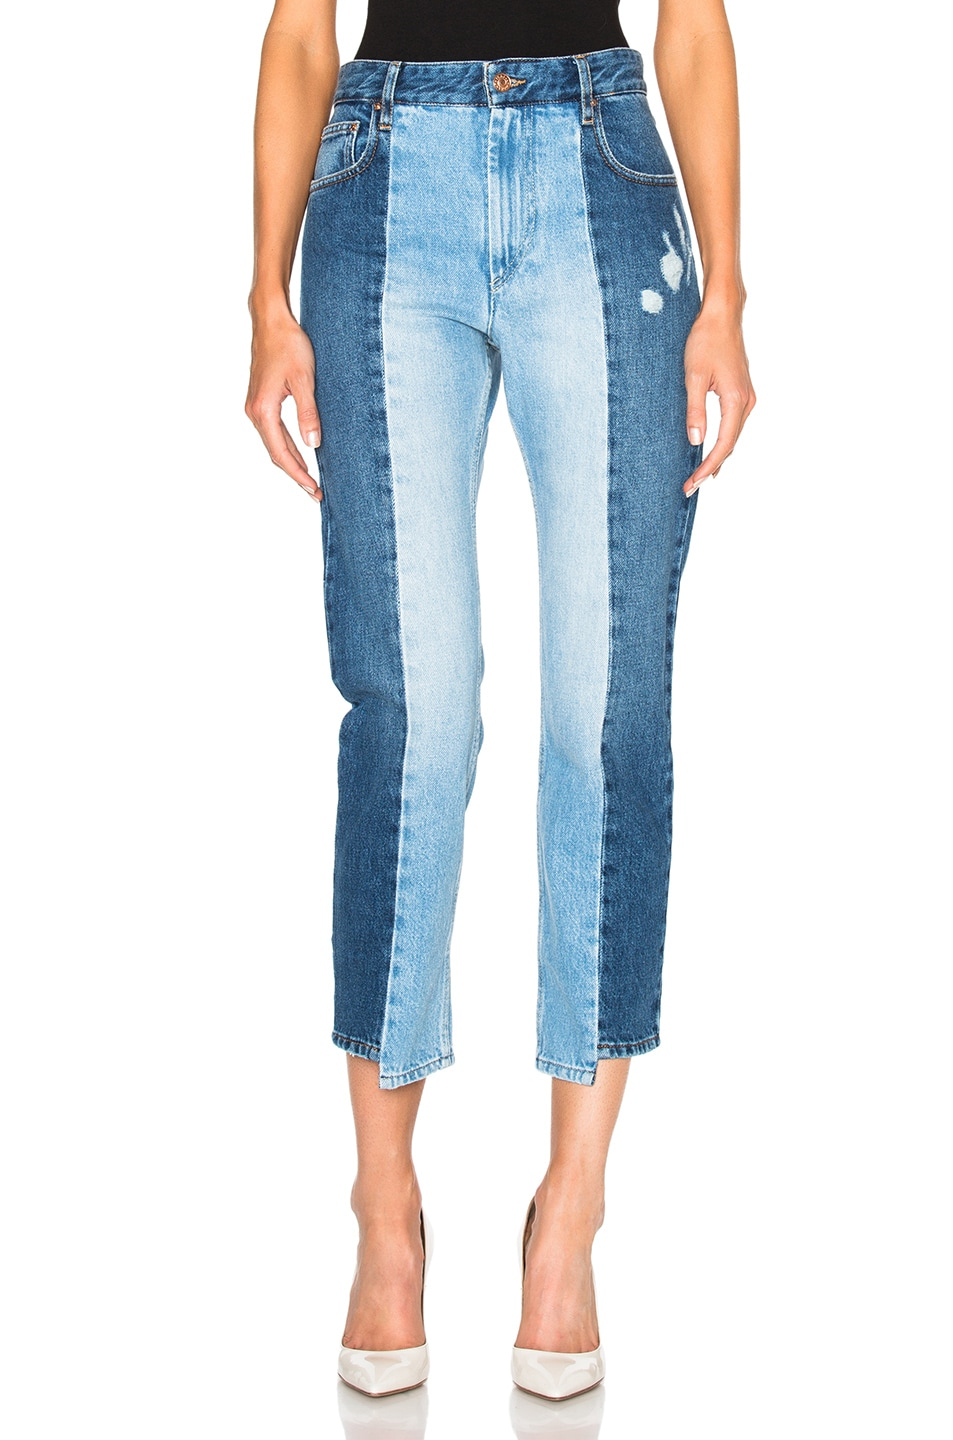 2688e0ef6b76 Image 1 of Isabel Marant Etoile Clancy Patchwork Denim in Light Blue